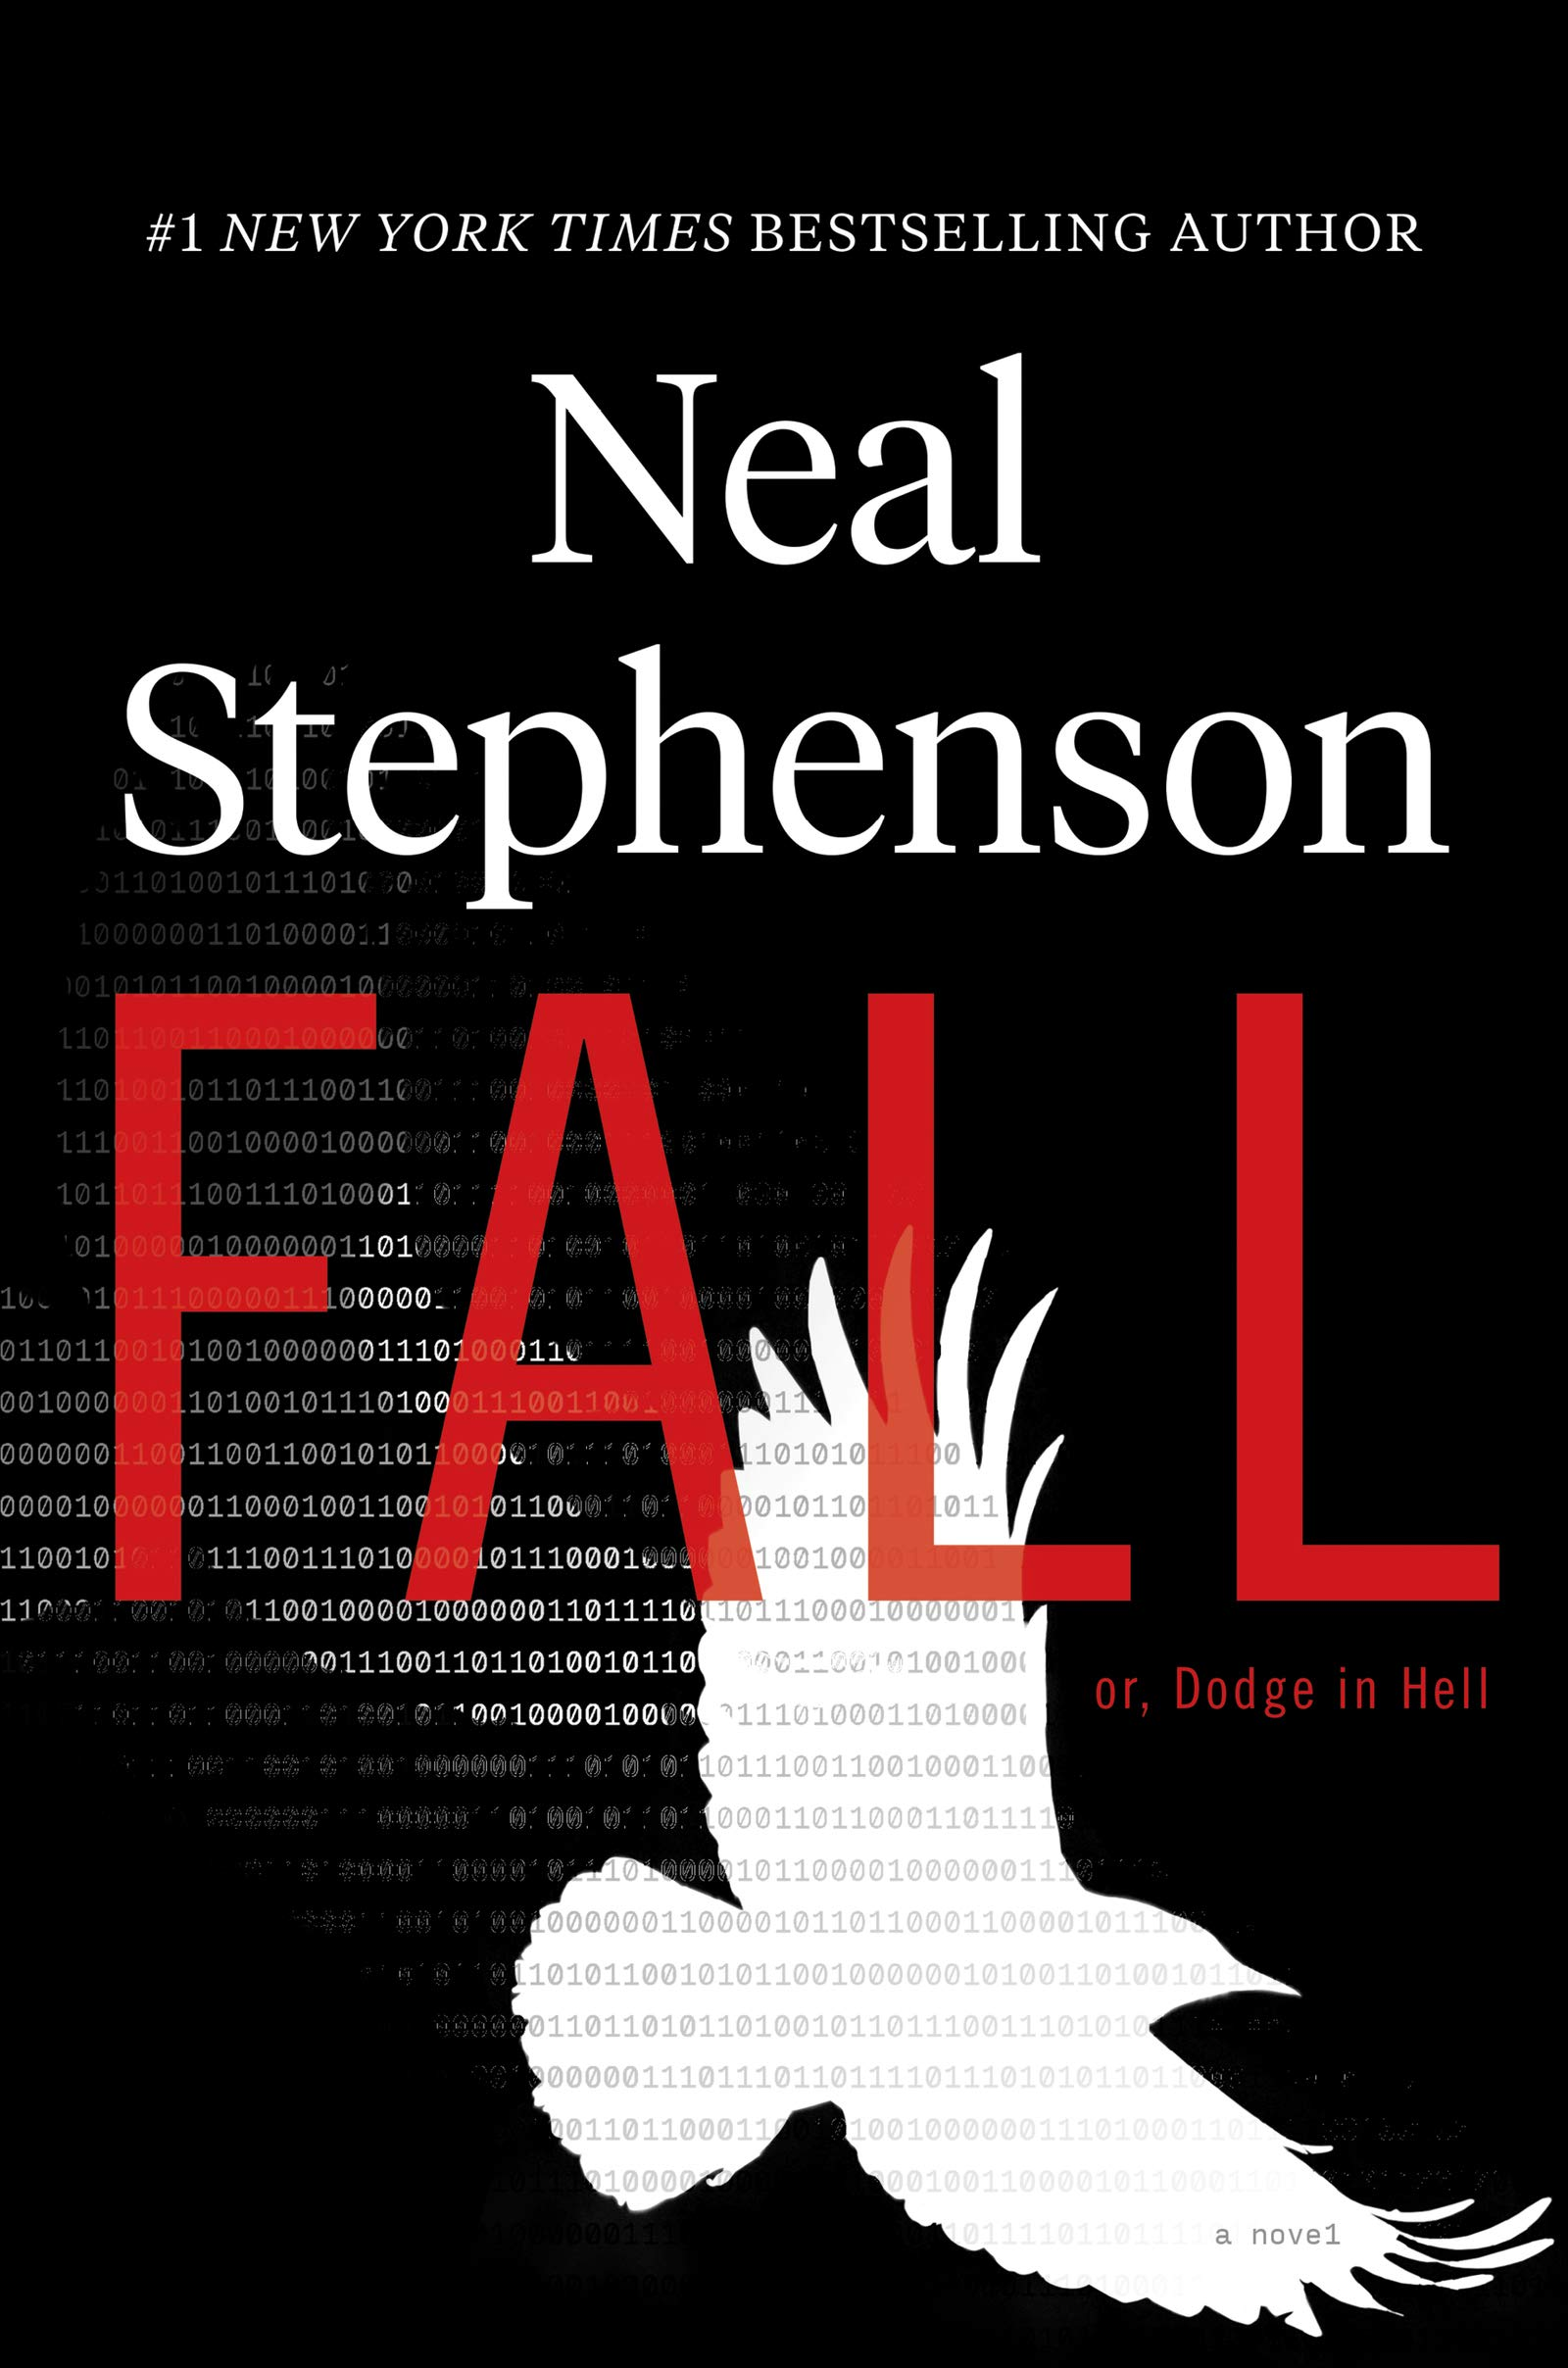 Neal Stephenson's Fall, or Dodge in Hell asks pressing questions about our digital future